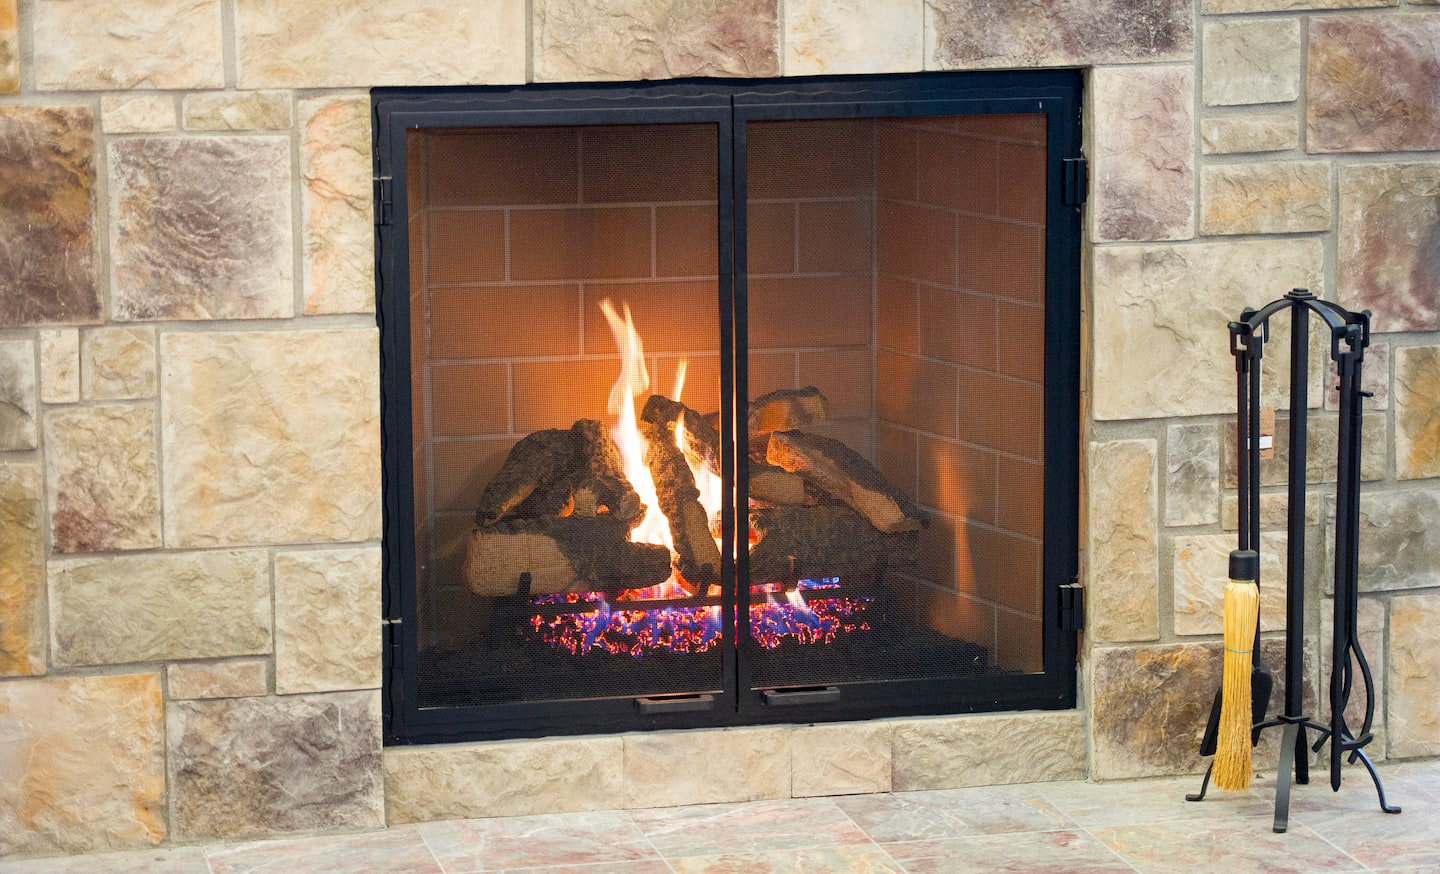 diy list articles gasfireplacesurrounds gas fea surround fireplace htm s ideas angie